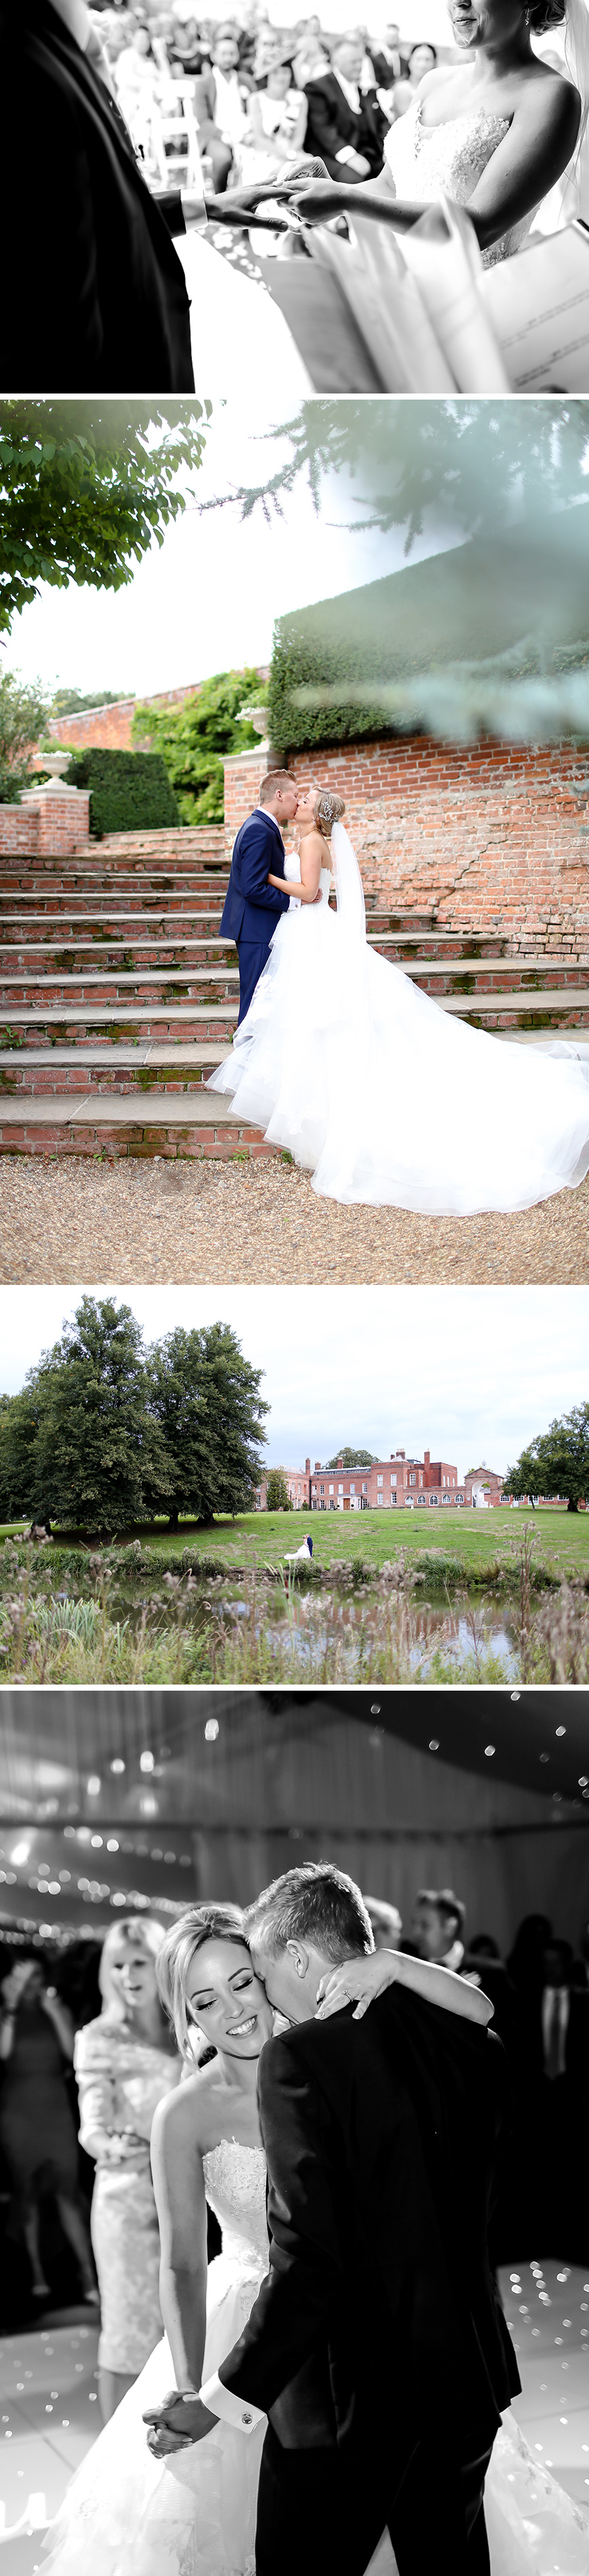 Real Wedding - Sophie and Tom's Champagne-Theme Wedding At Braxted Park | CHWV